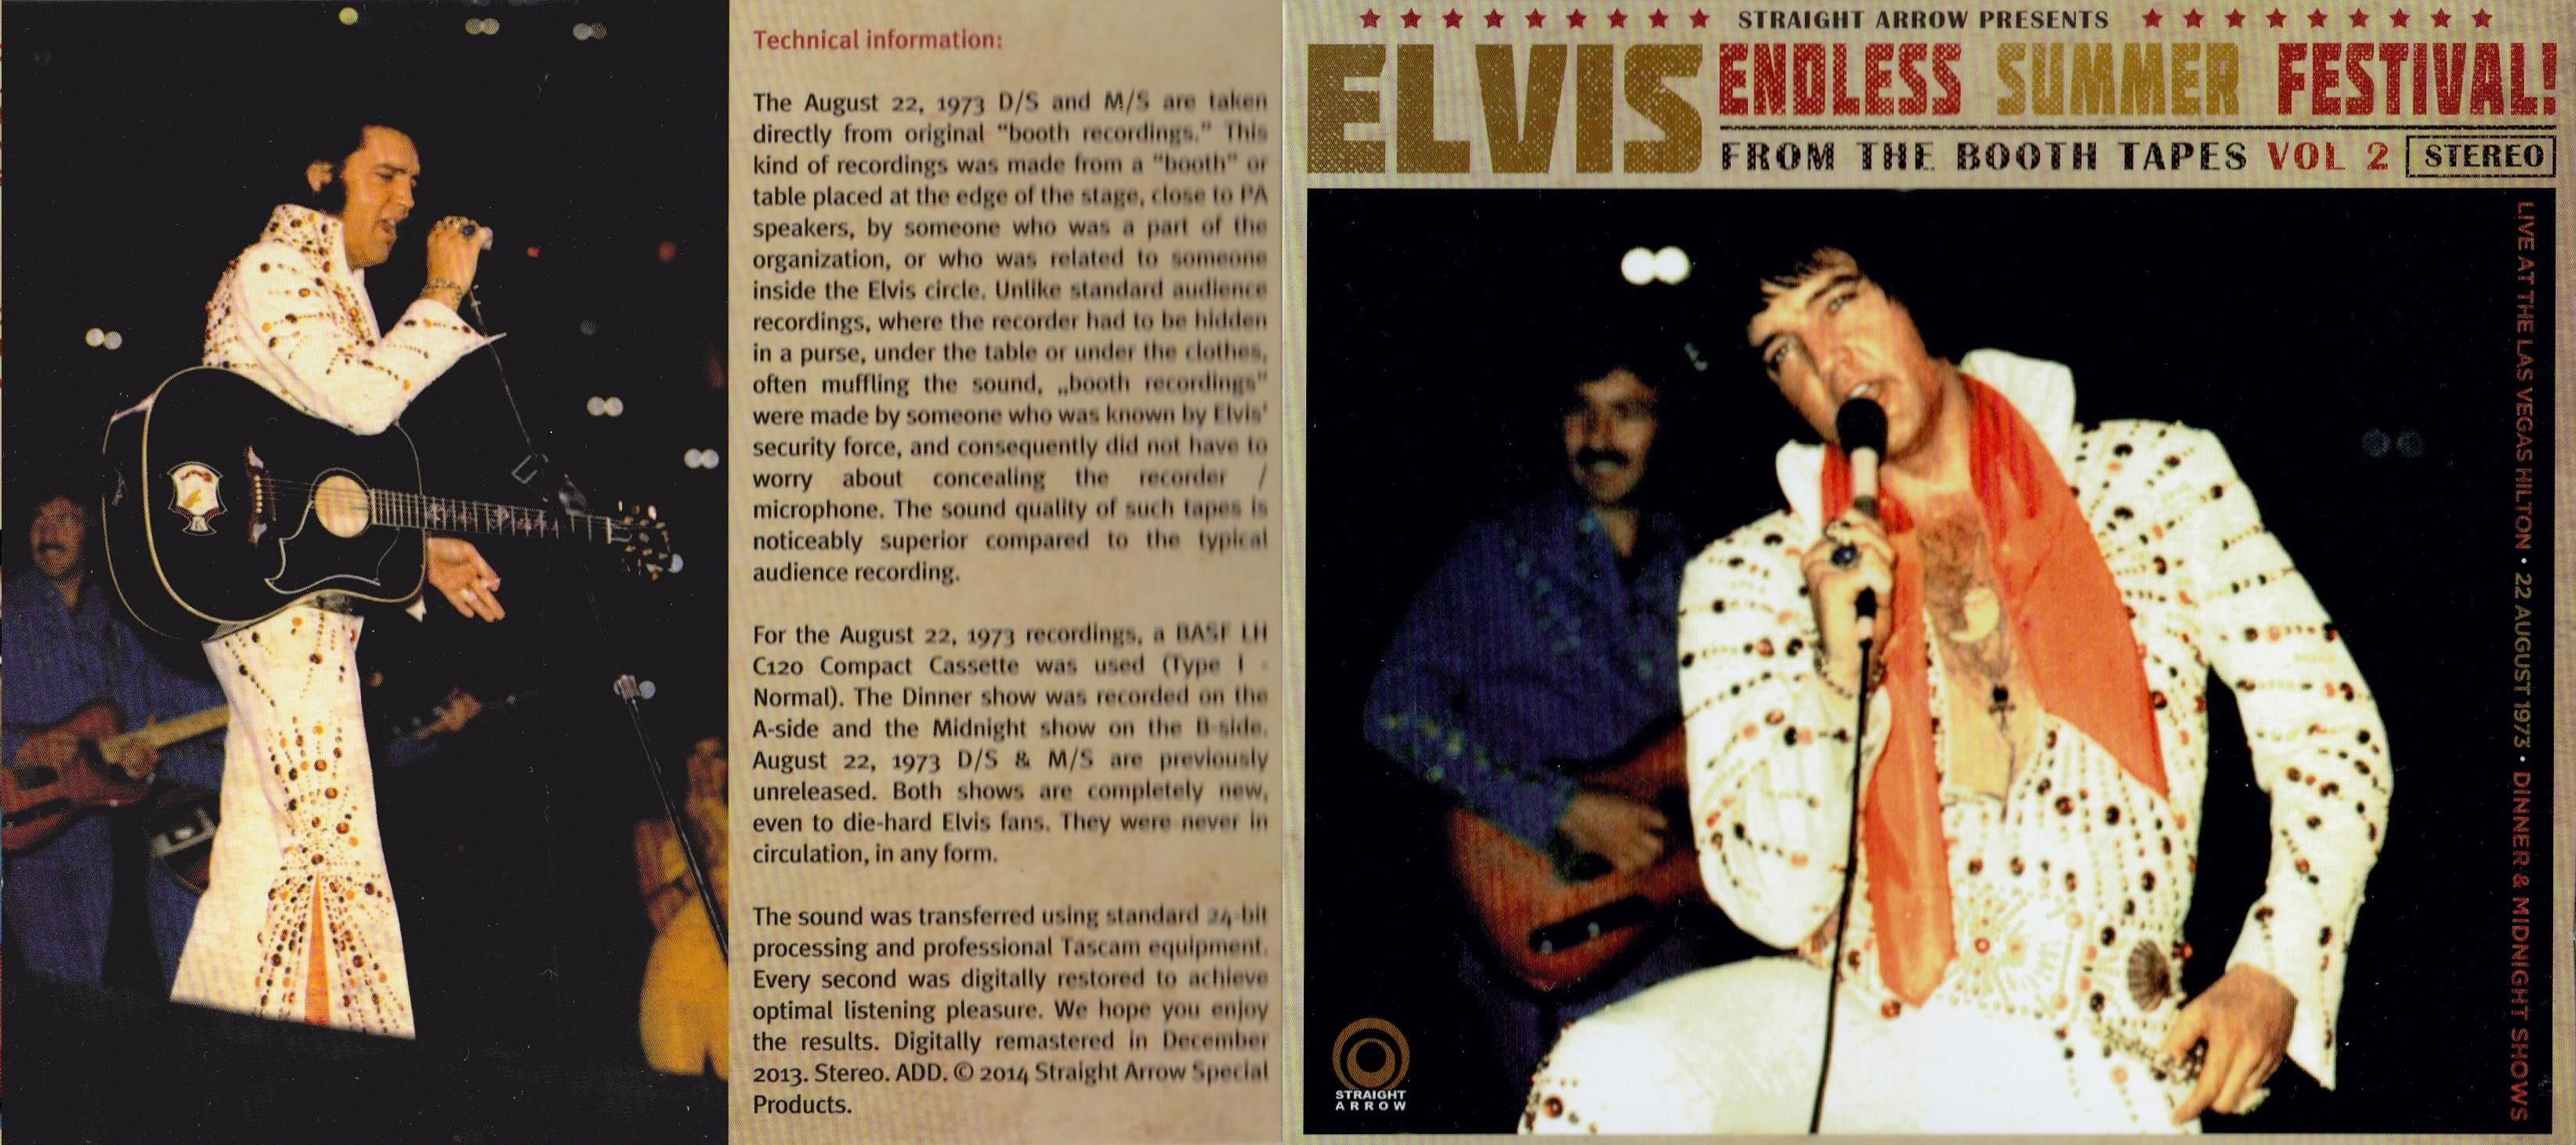 Elvis Presley - Endless Summer Festival !, 08-22-1973 (2 CD-set)